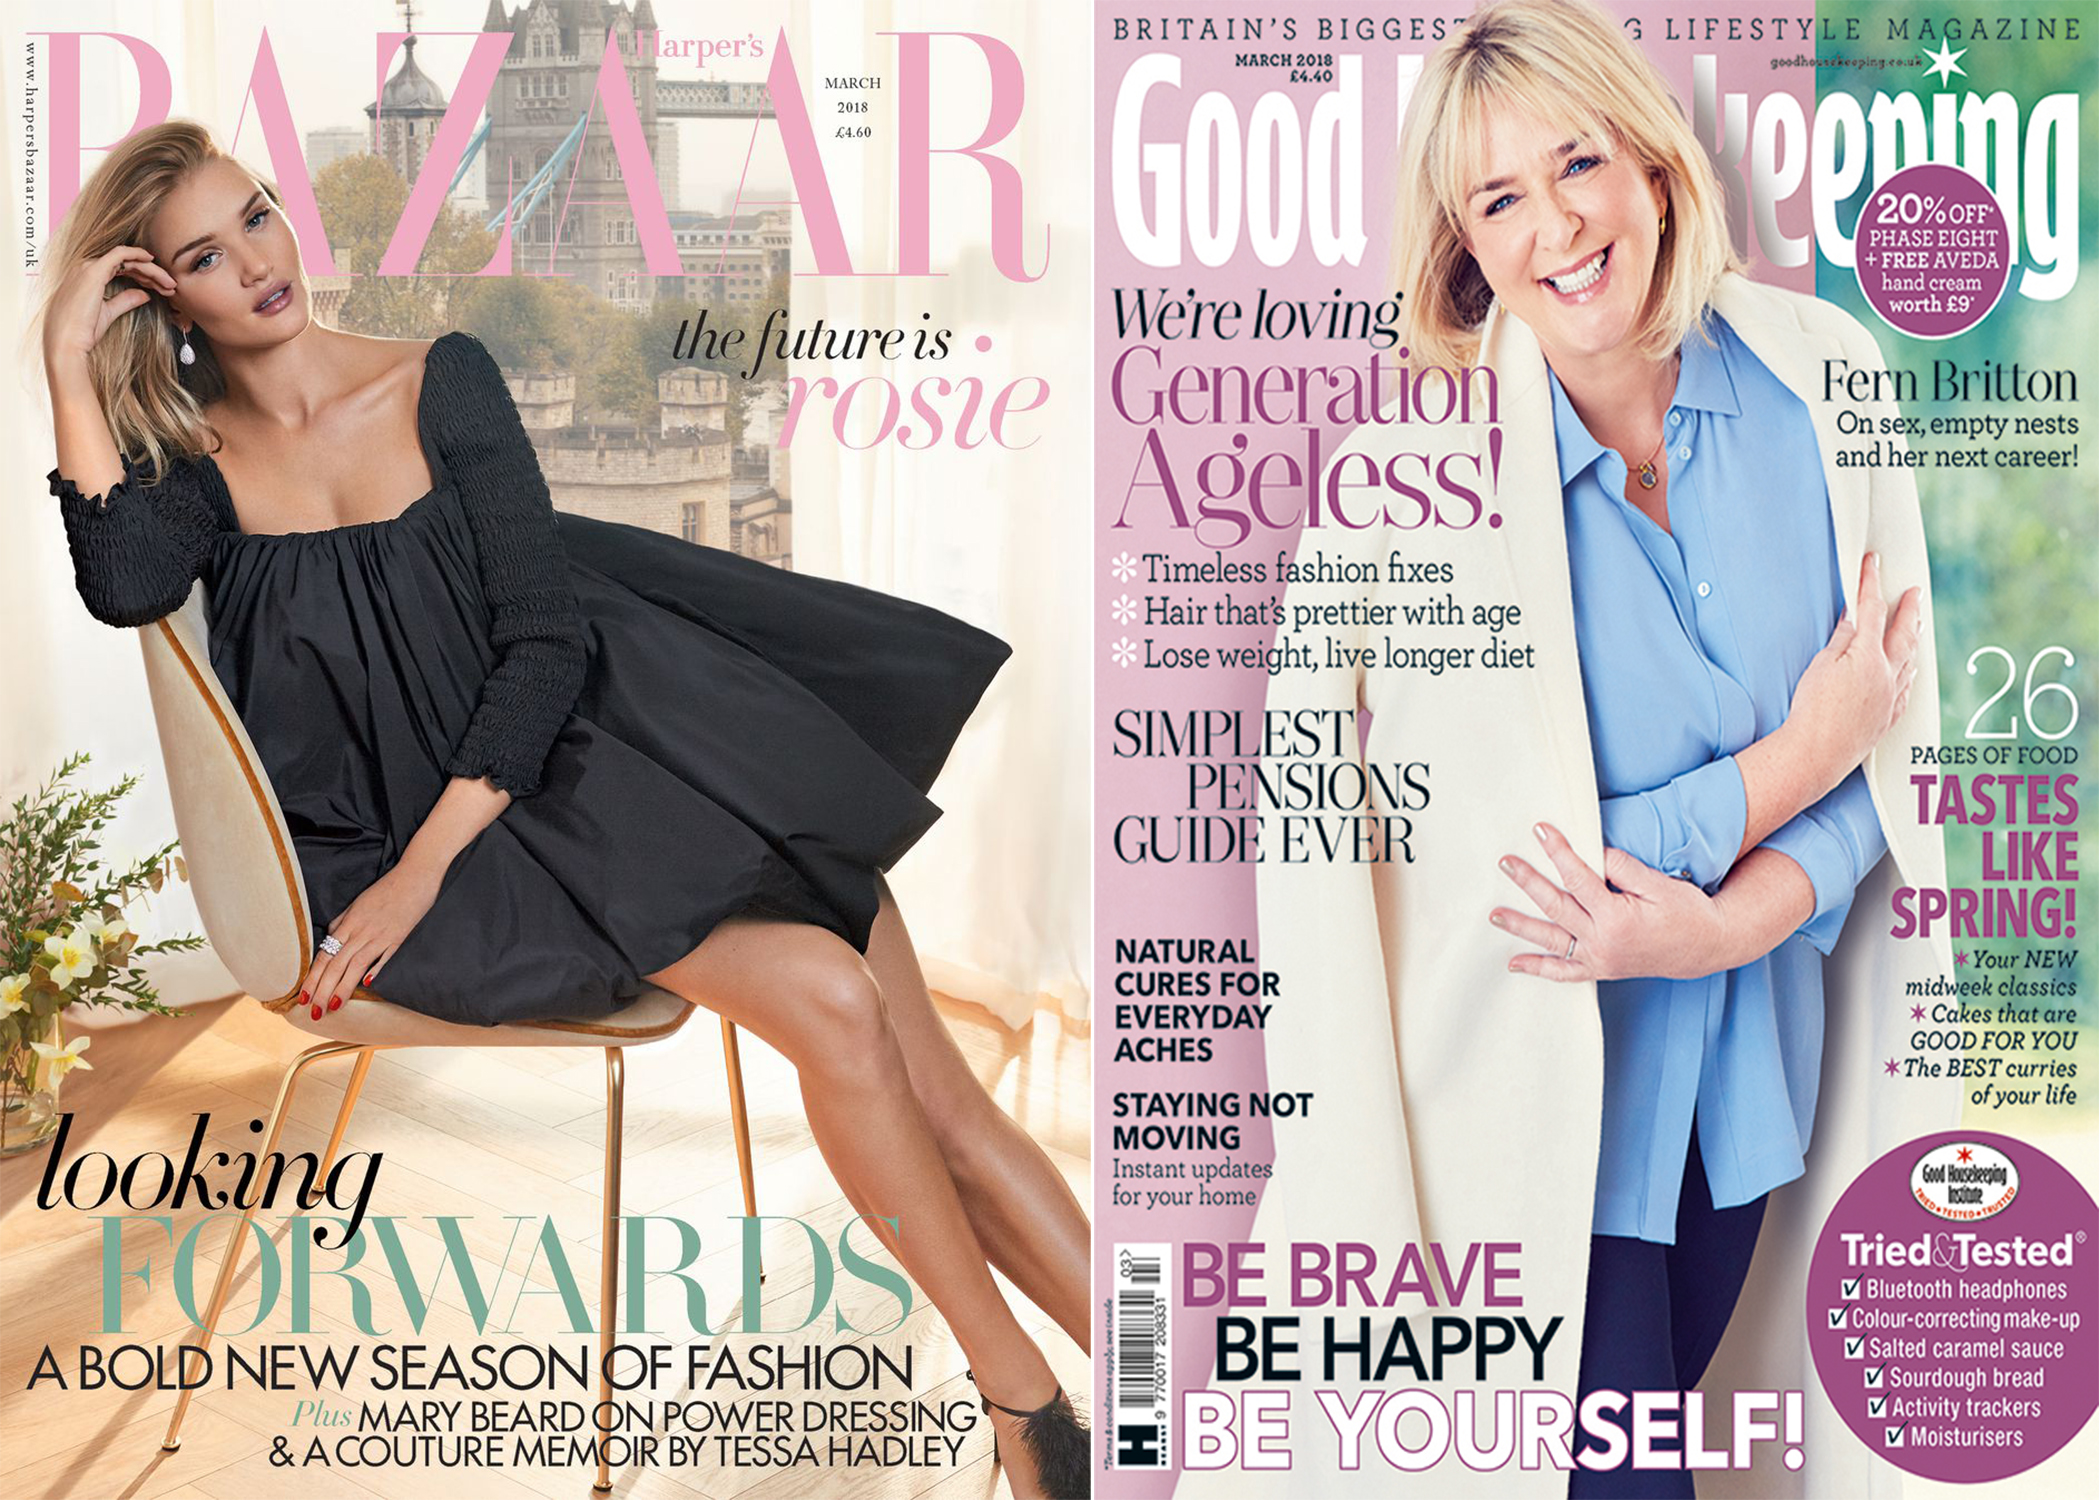 The covers of Harper's Bazaar UK and Good Housekeeping UK